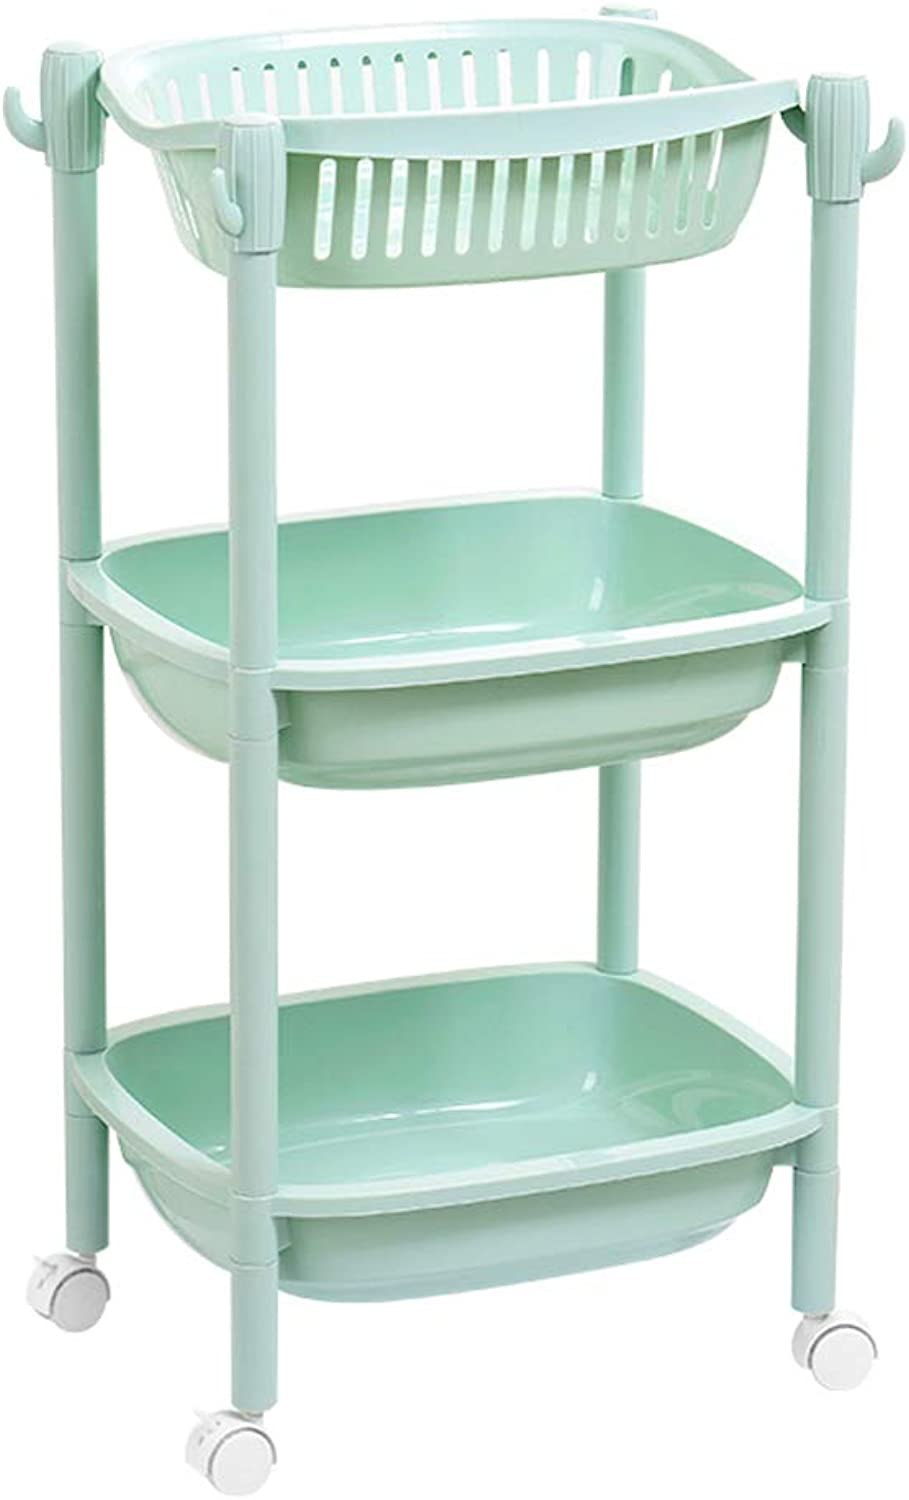 Slide Out Removable Storage Tower Kitchen Bedroom Storage Rack Bathroom Shelf with Wheels Green (Size   3 Tier)